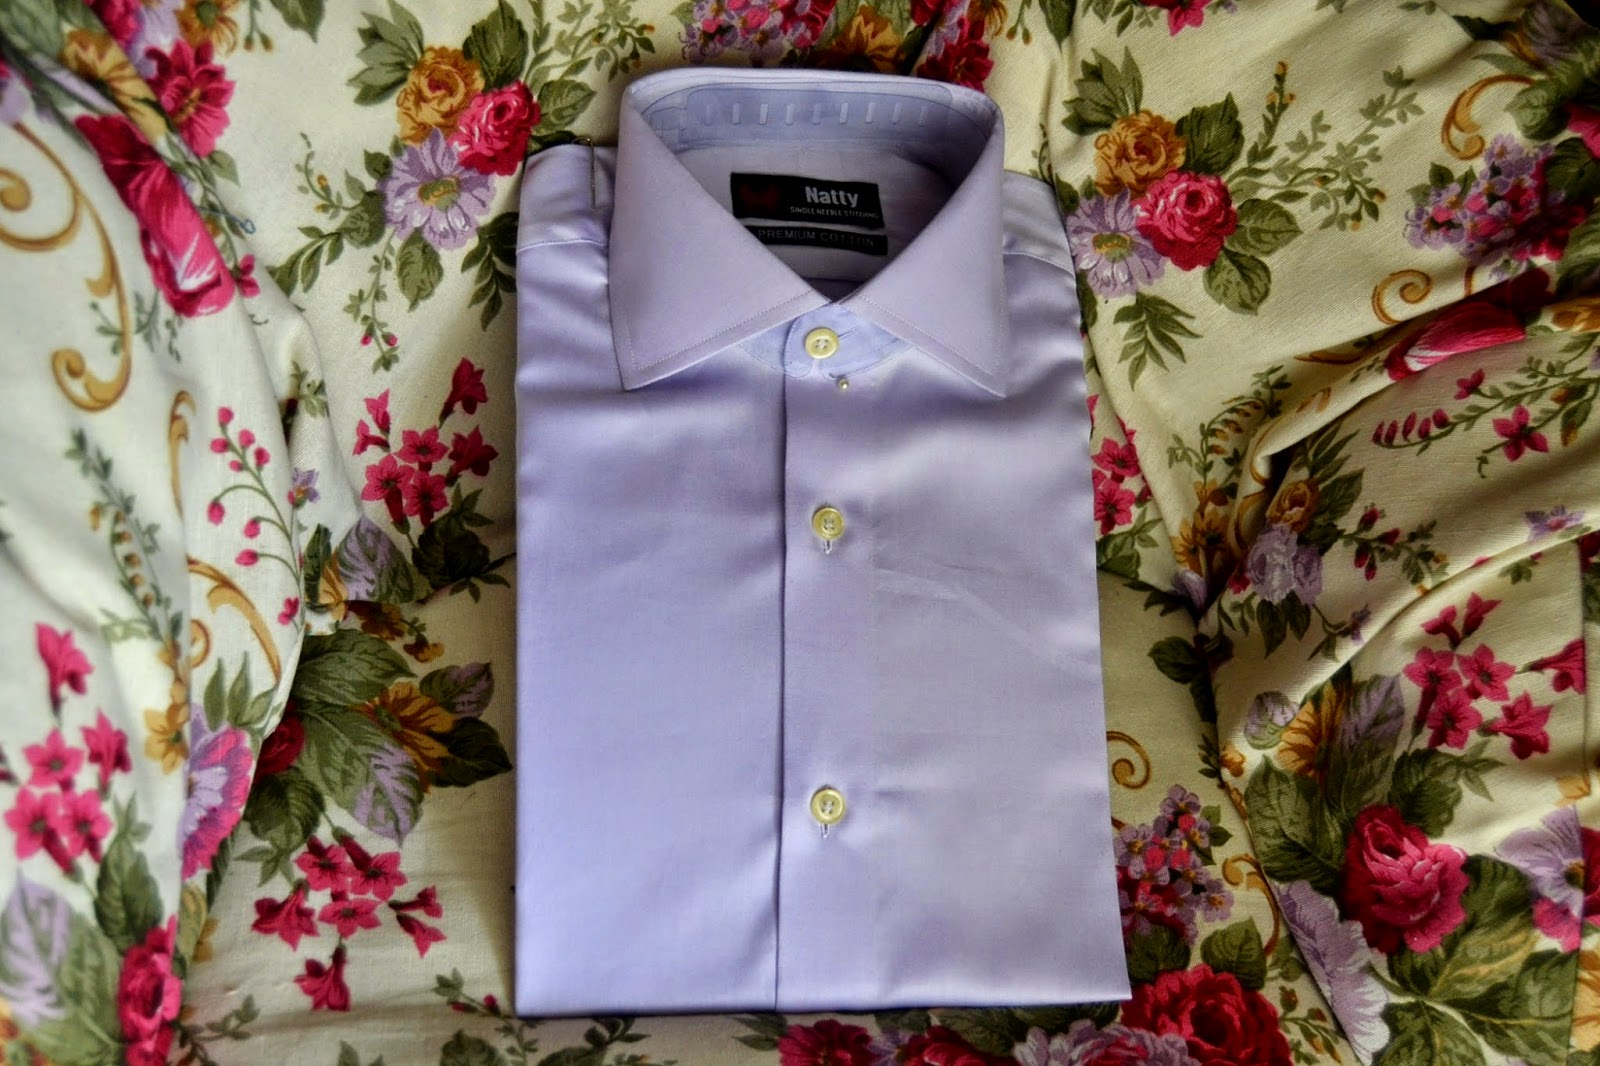 http://www.syriouslyinfashion.com/2015/03/natty-shirts-lilac-custom-dress-shirt.html